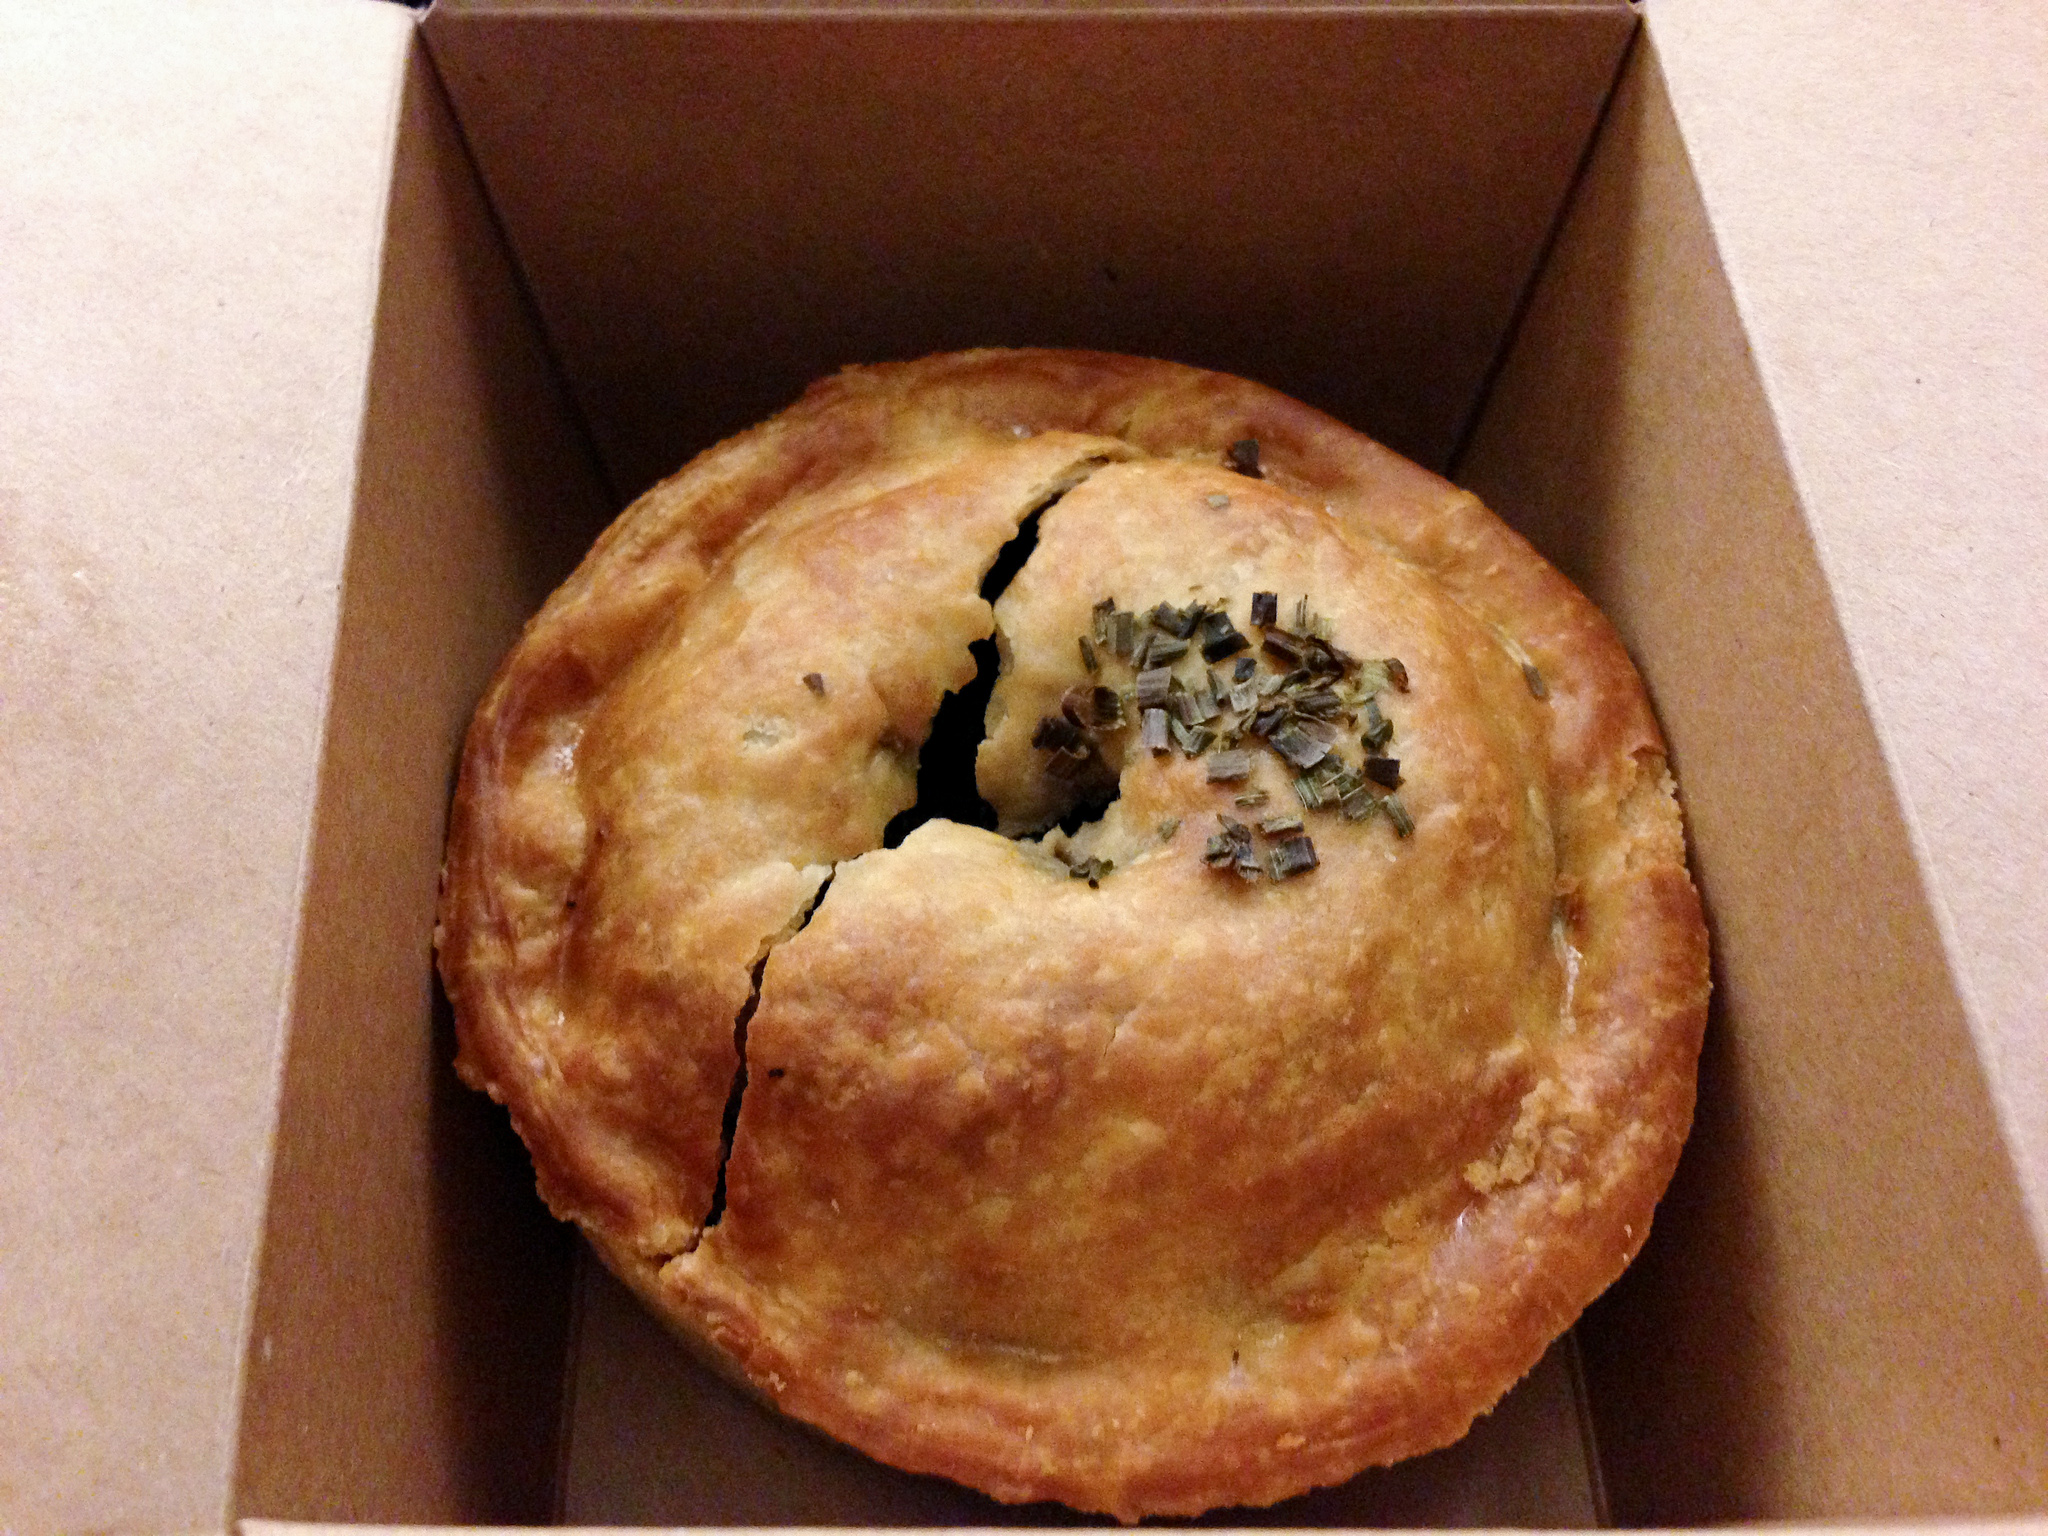 Pie to-go at Pieminister in London. Photo by alphacityguides.